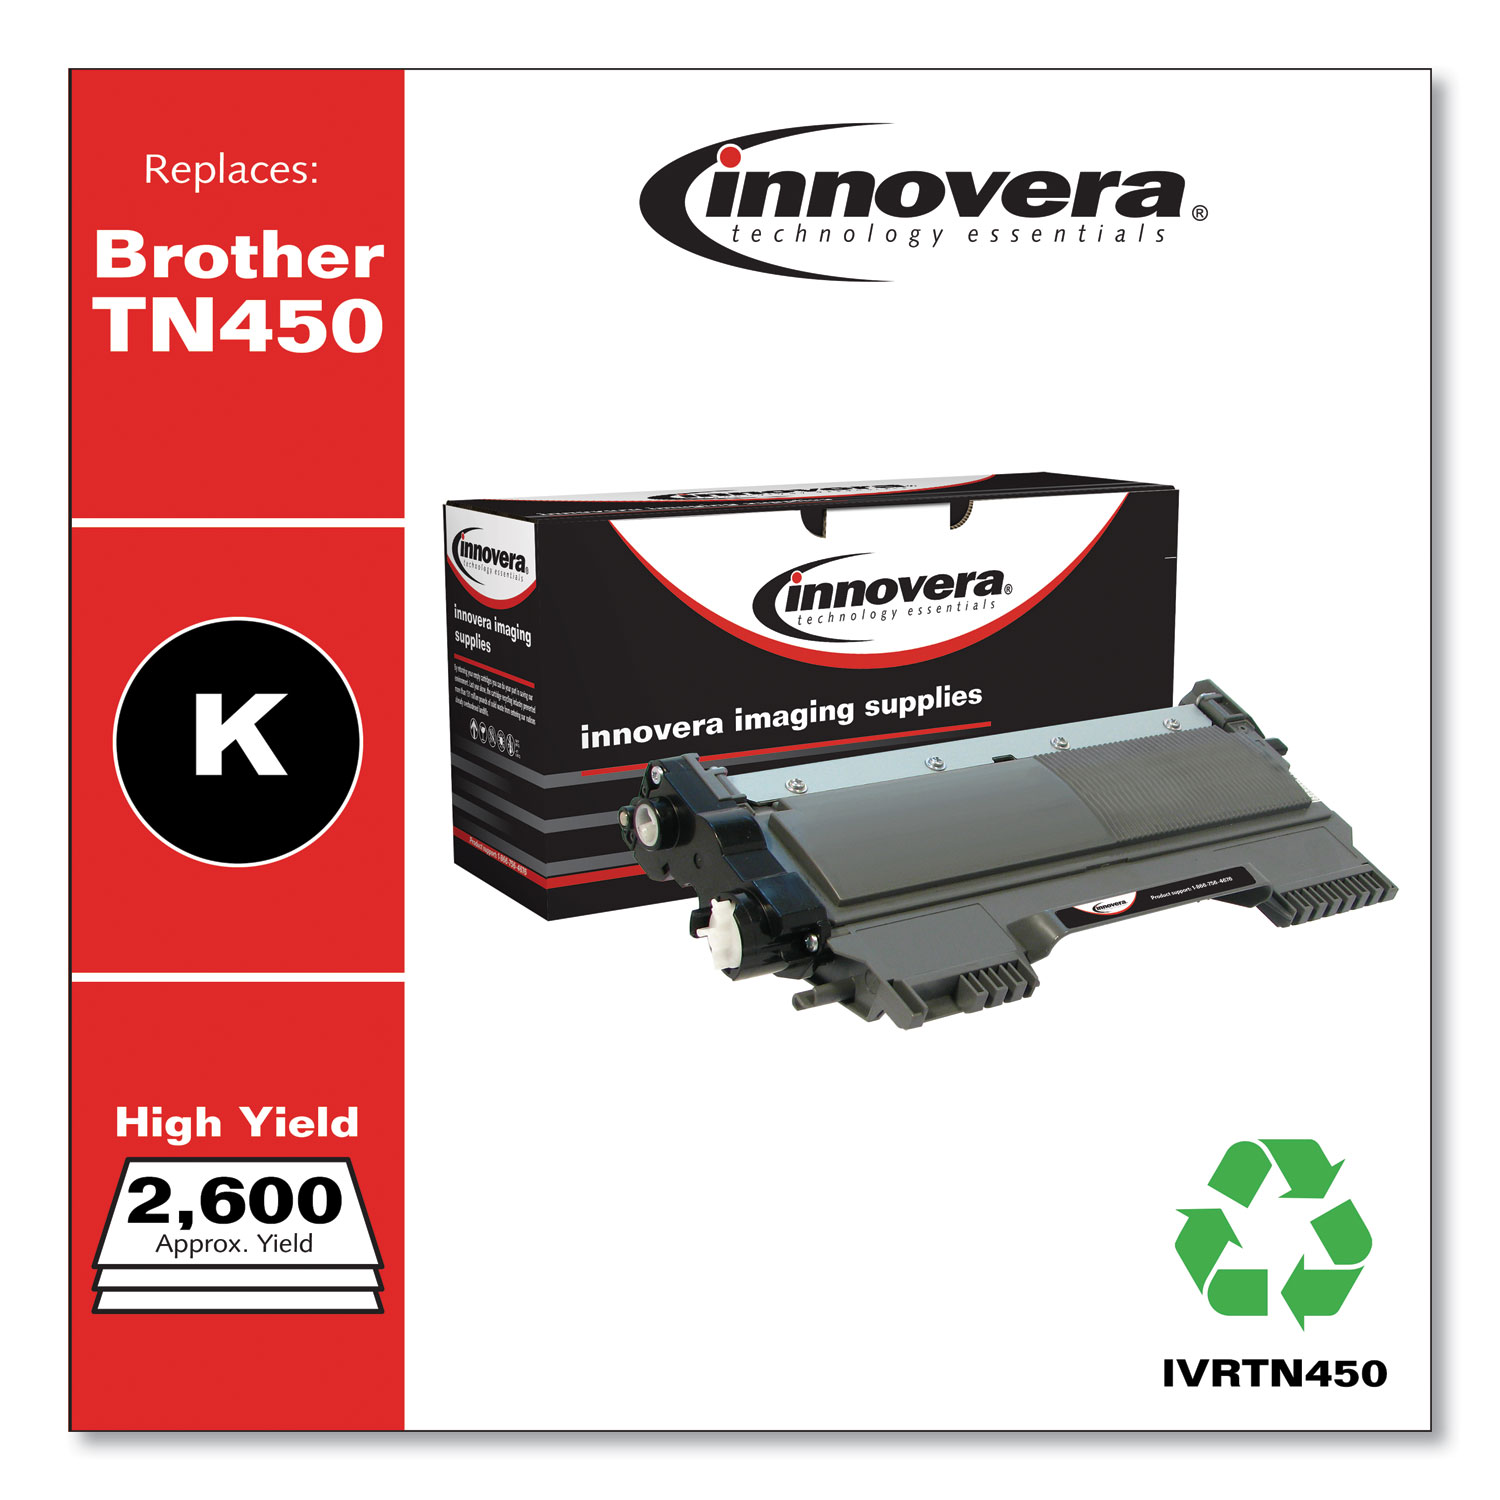 Remanufactured Black High-Yield Toner Cartridge, Replacement for Brother TN450, 2,600 Page-Yield